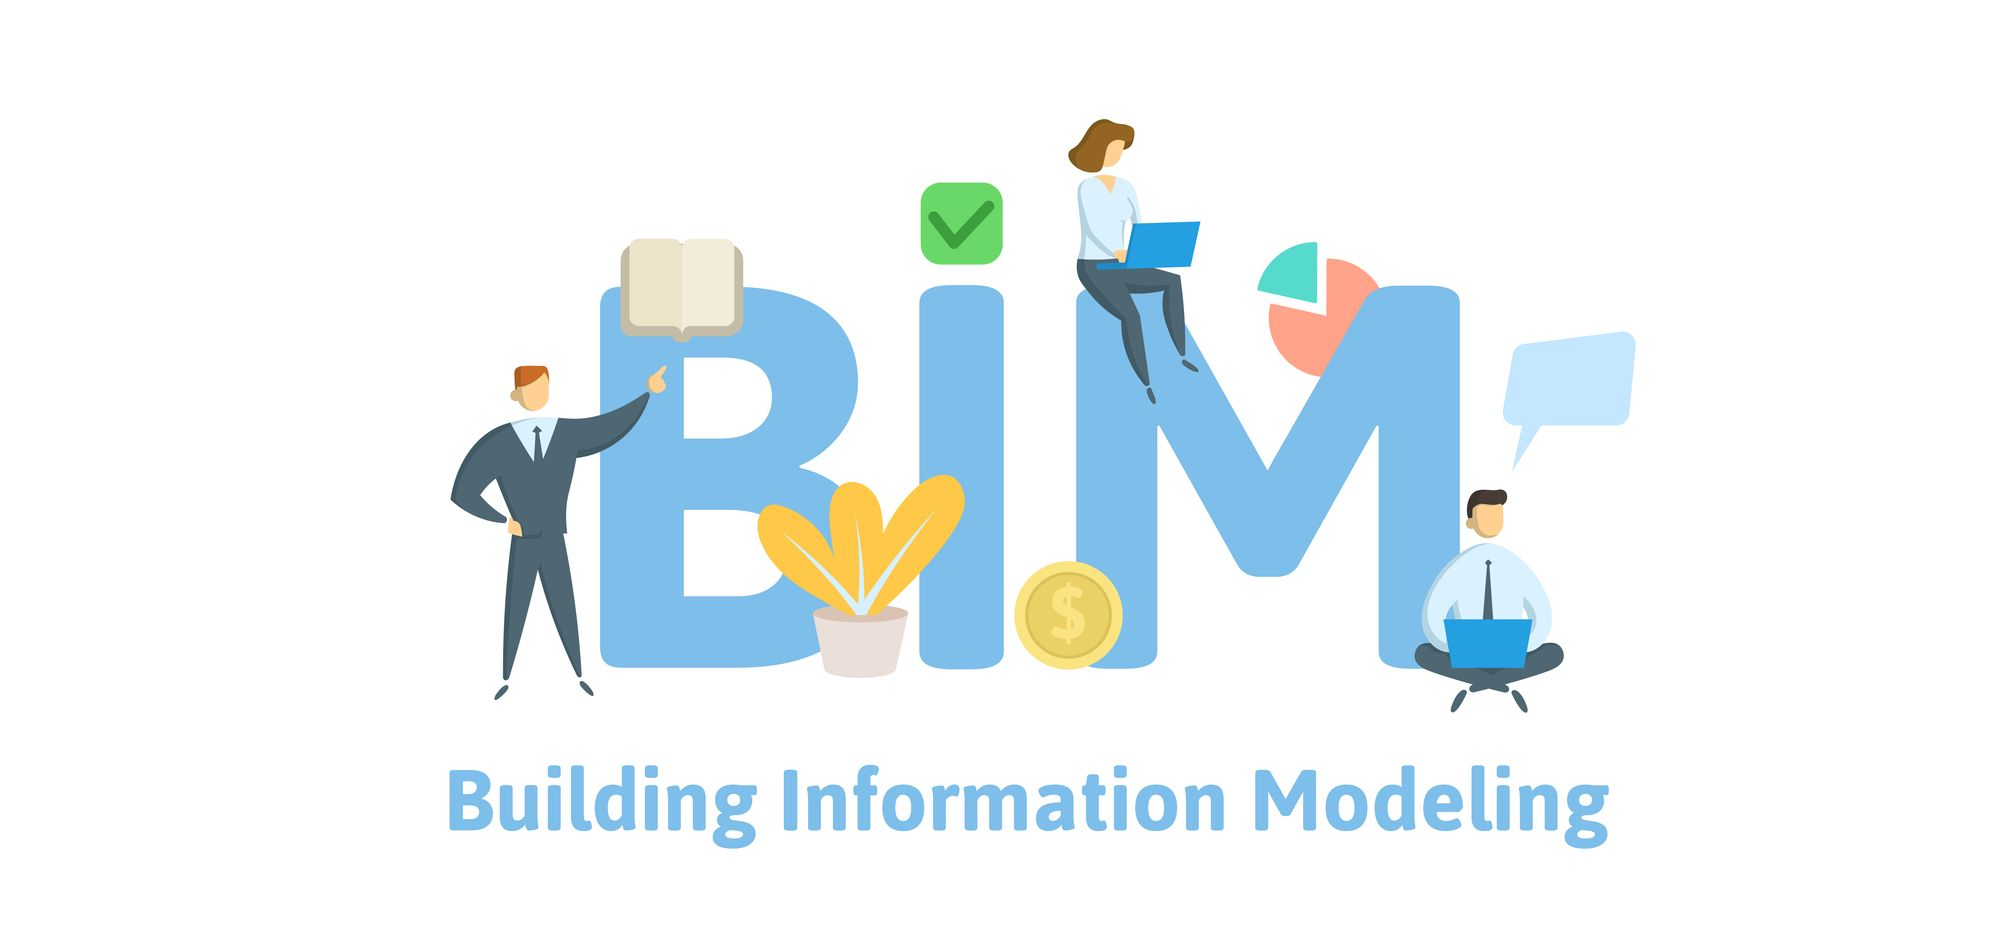 COVID-19 Impact on Global Building Information Modeling (BIM) Market 2020 Technology, Share, Demand, Opportunity, Projection Analysis Forecast Outlook 2026